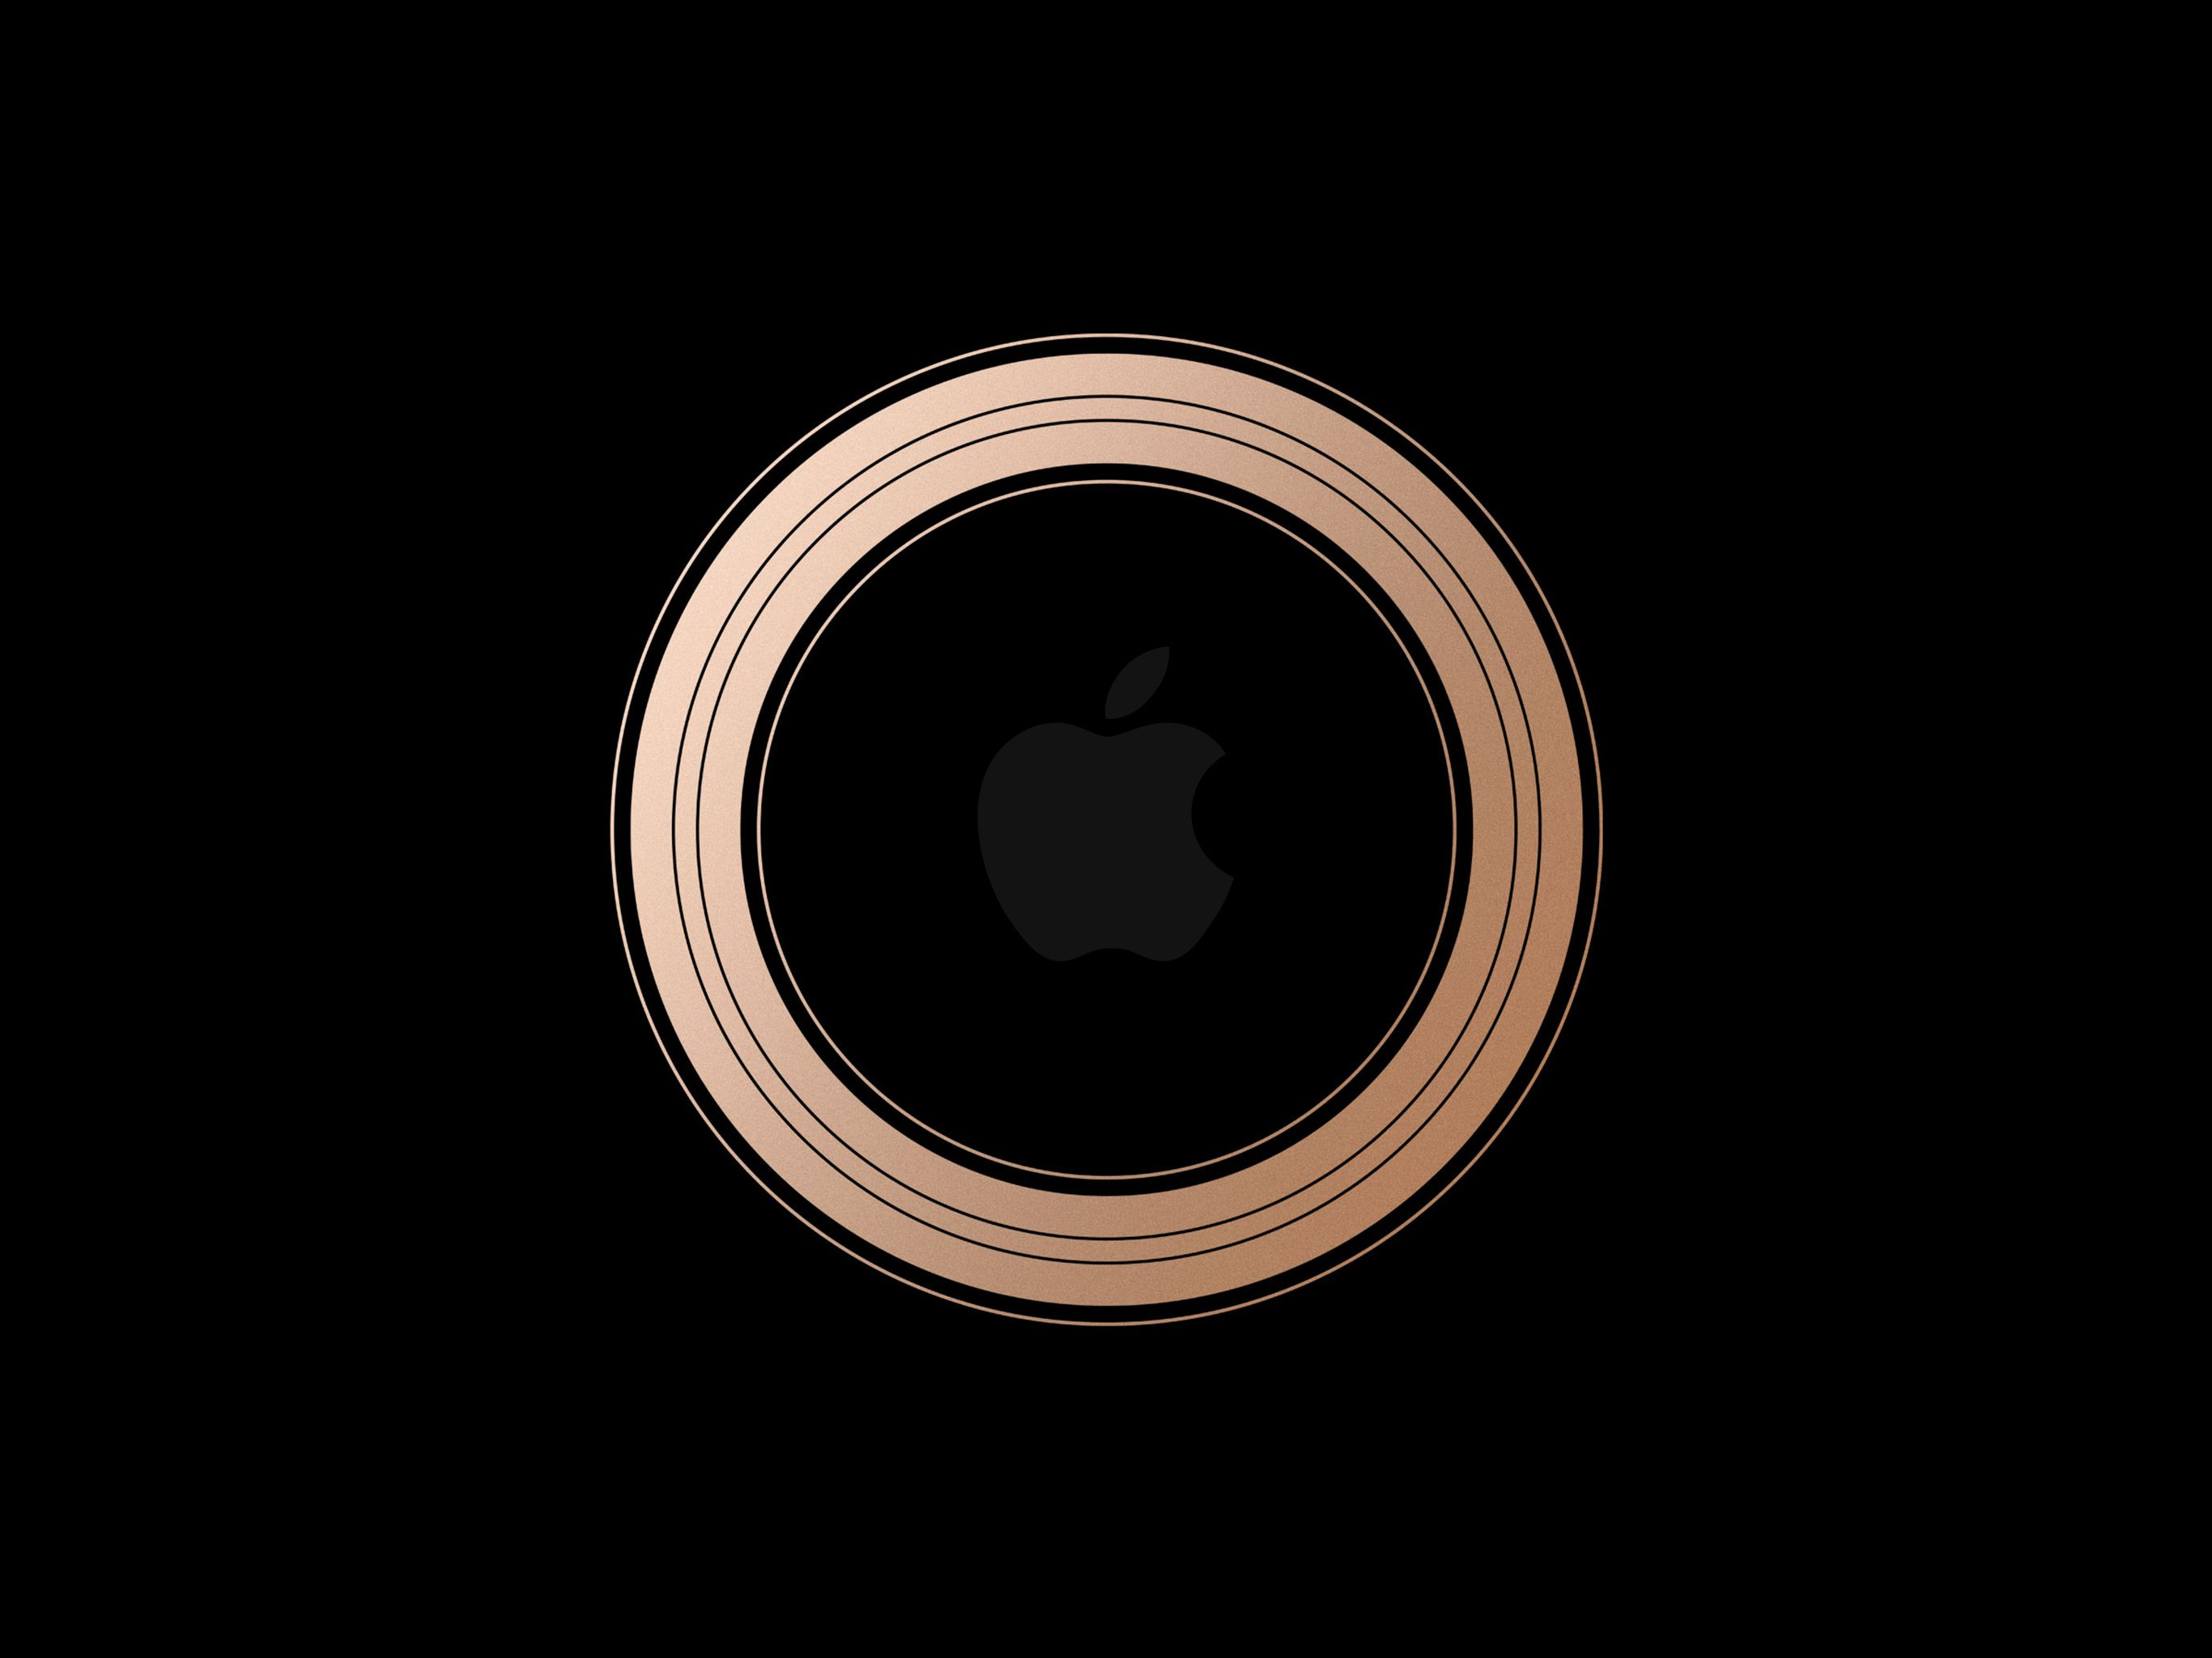 Gather Round Apple Event Wallpapers Apple Watch Wallpaper Watch Wallpaper Hd Dark Wallpapers